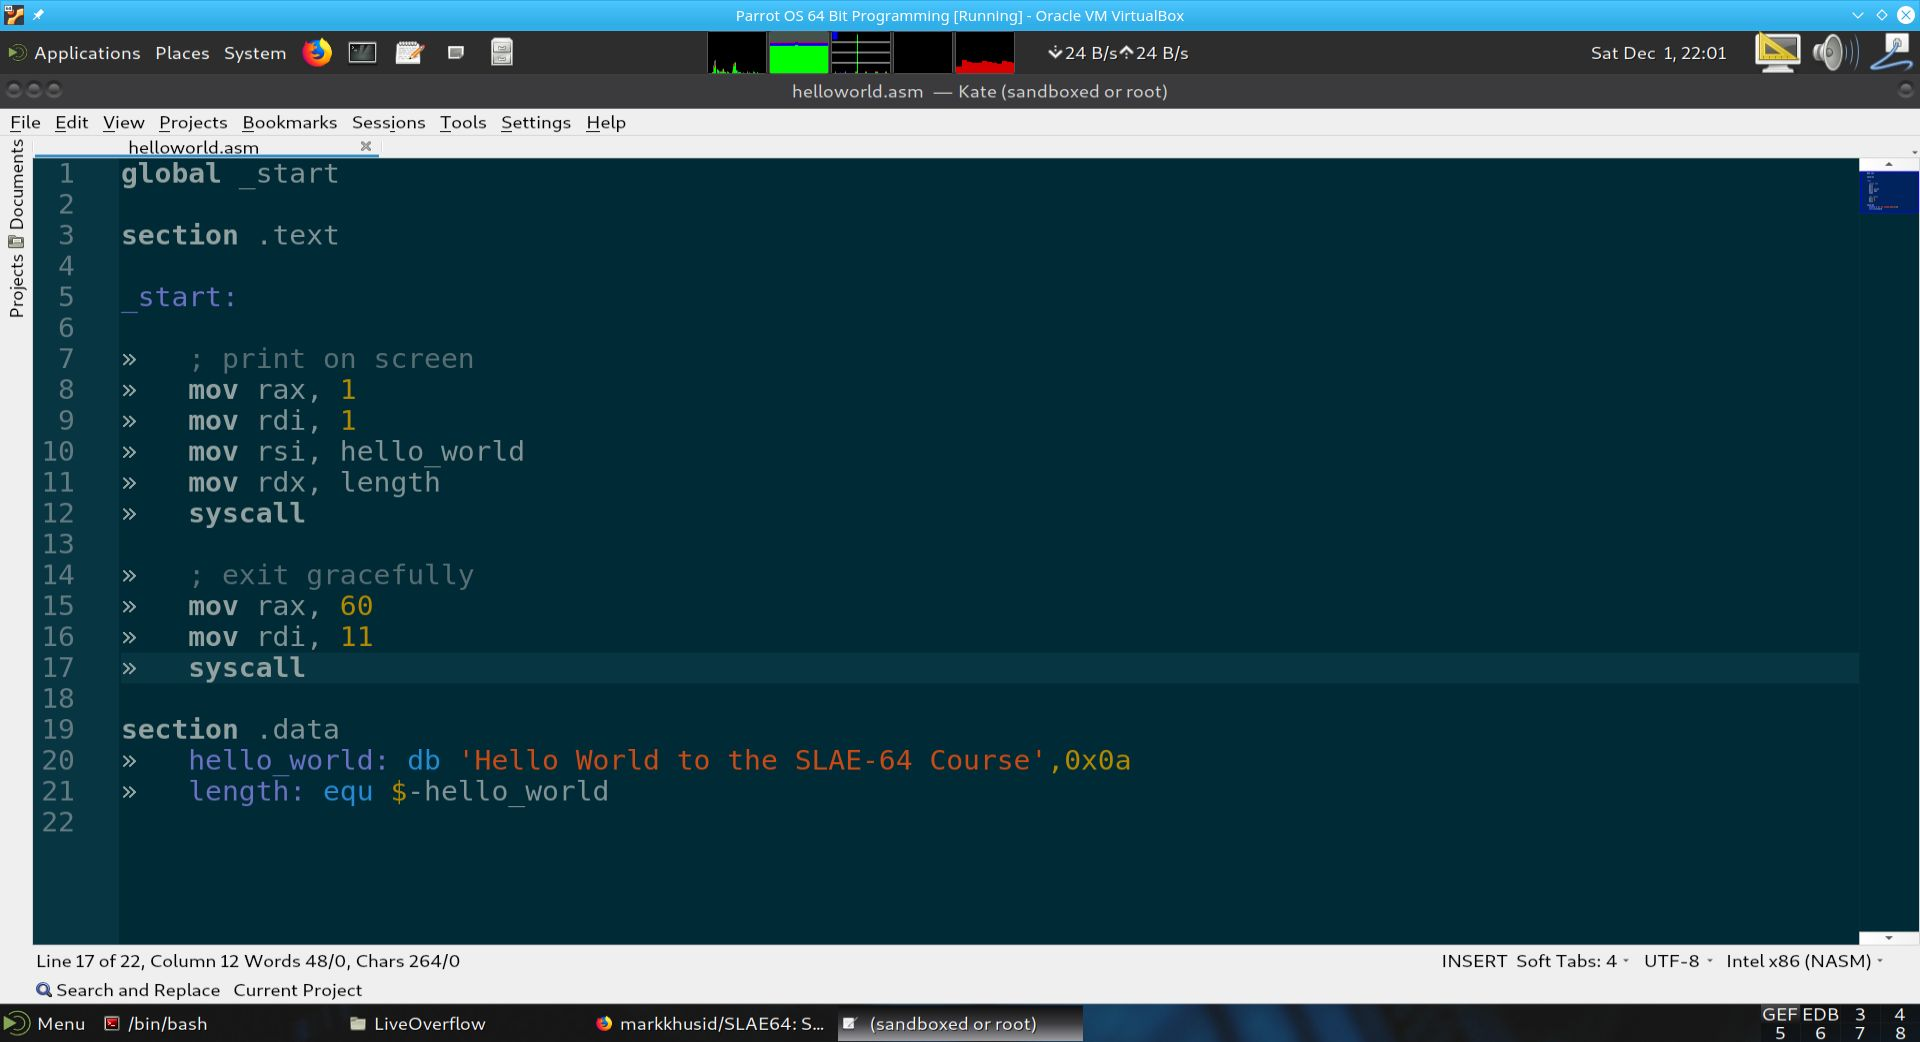 Module 1 Section 5 - Hello World in 64 Bit Assembly Coding, Assembling,  Linking and Running in GDB and Radare2